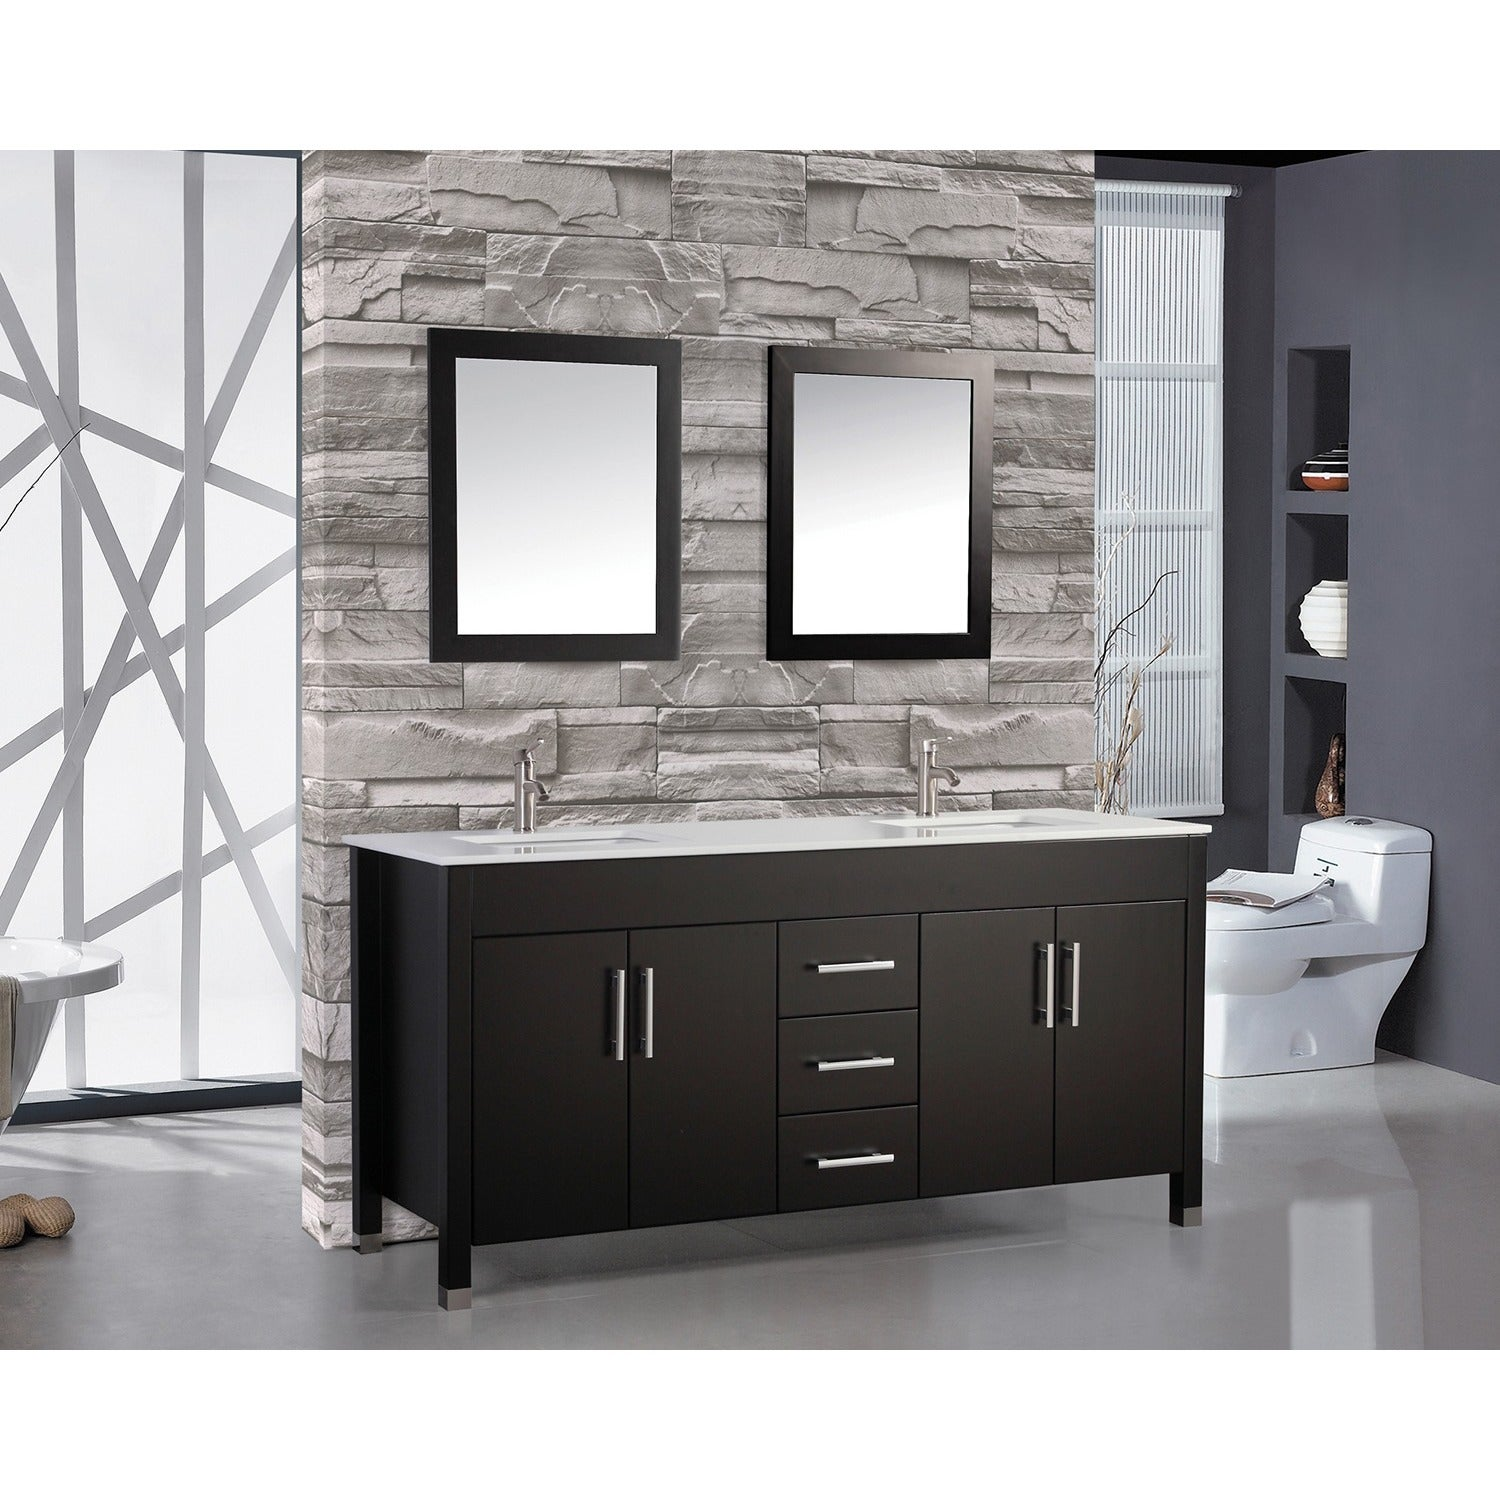 Mtd Vanities Monaco 72 Inch Double Sink Bathroom Vanity Set With Mirror And Faucet Free Shipping Today 10410723